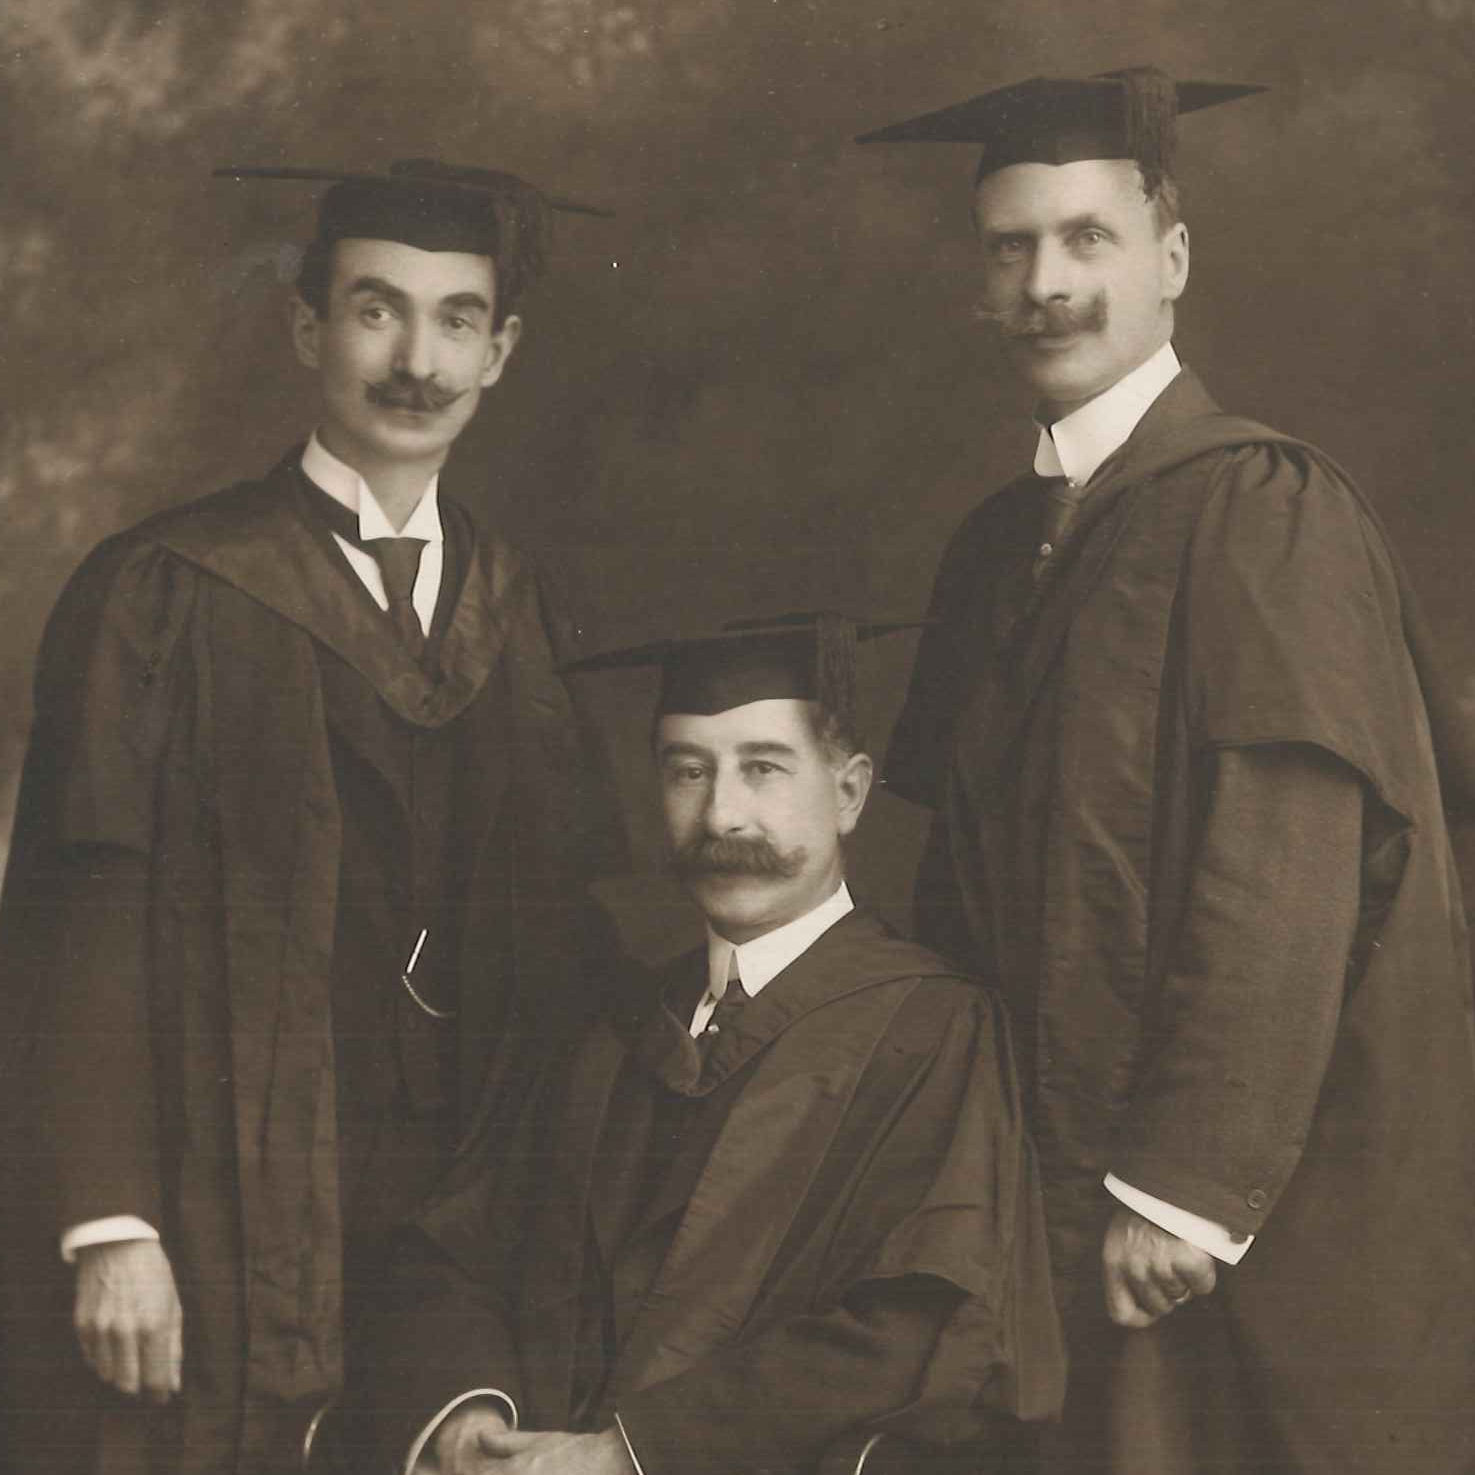 Photograph of Liverpool University Dental School students